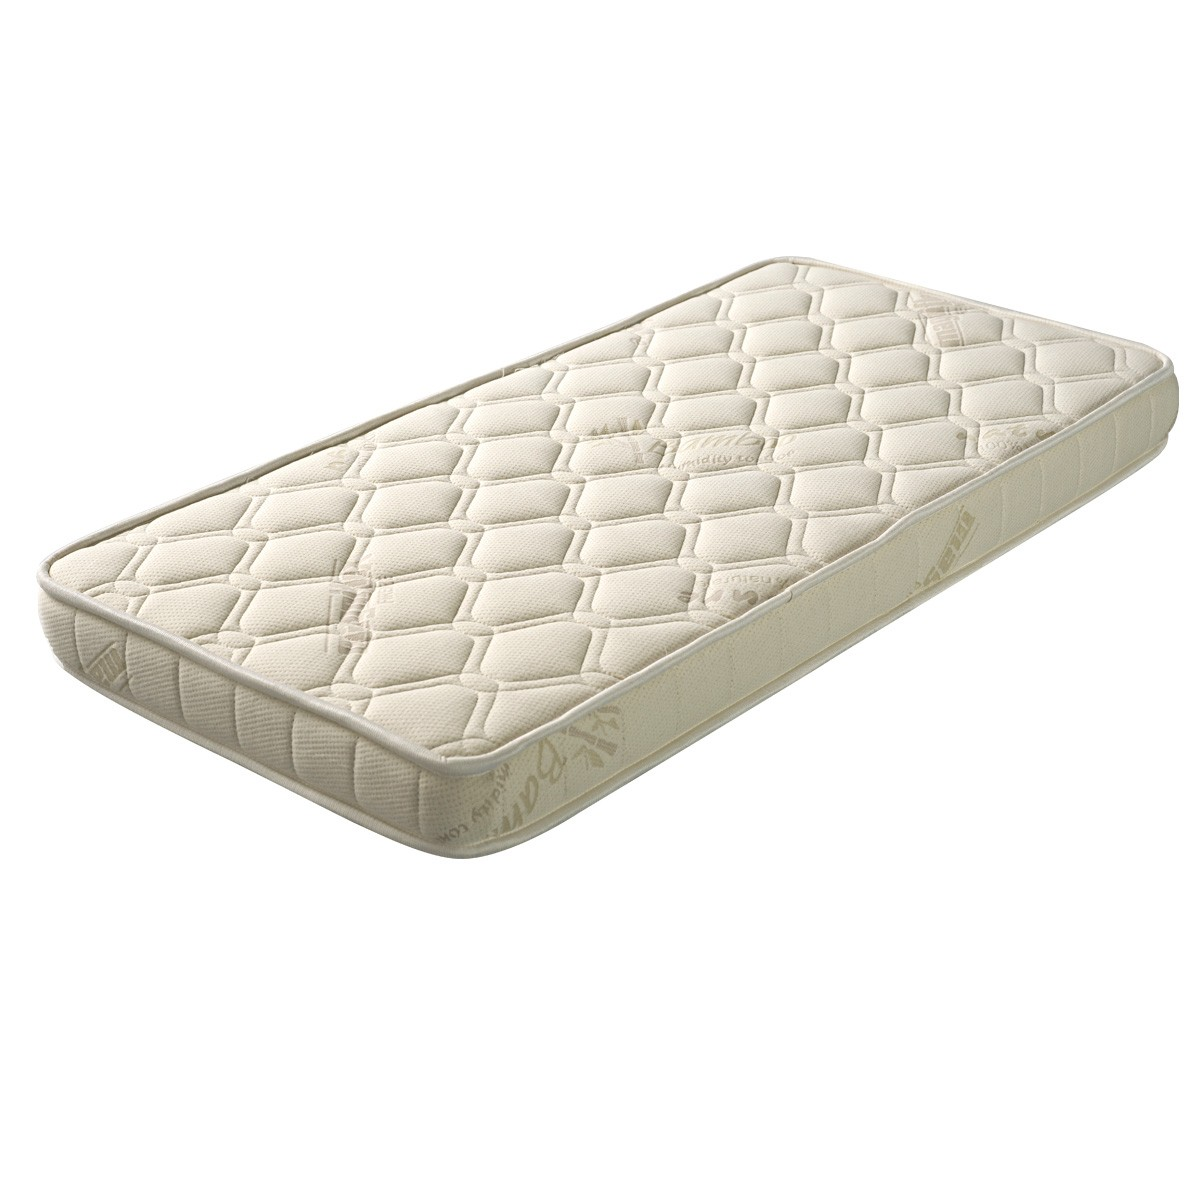 bamboo foam insignia products memory mattress beds bed pocket lifestyle away sprung drift